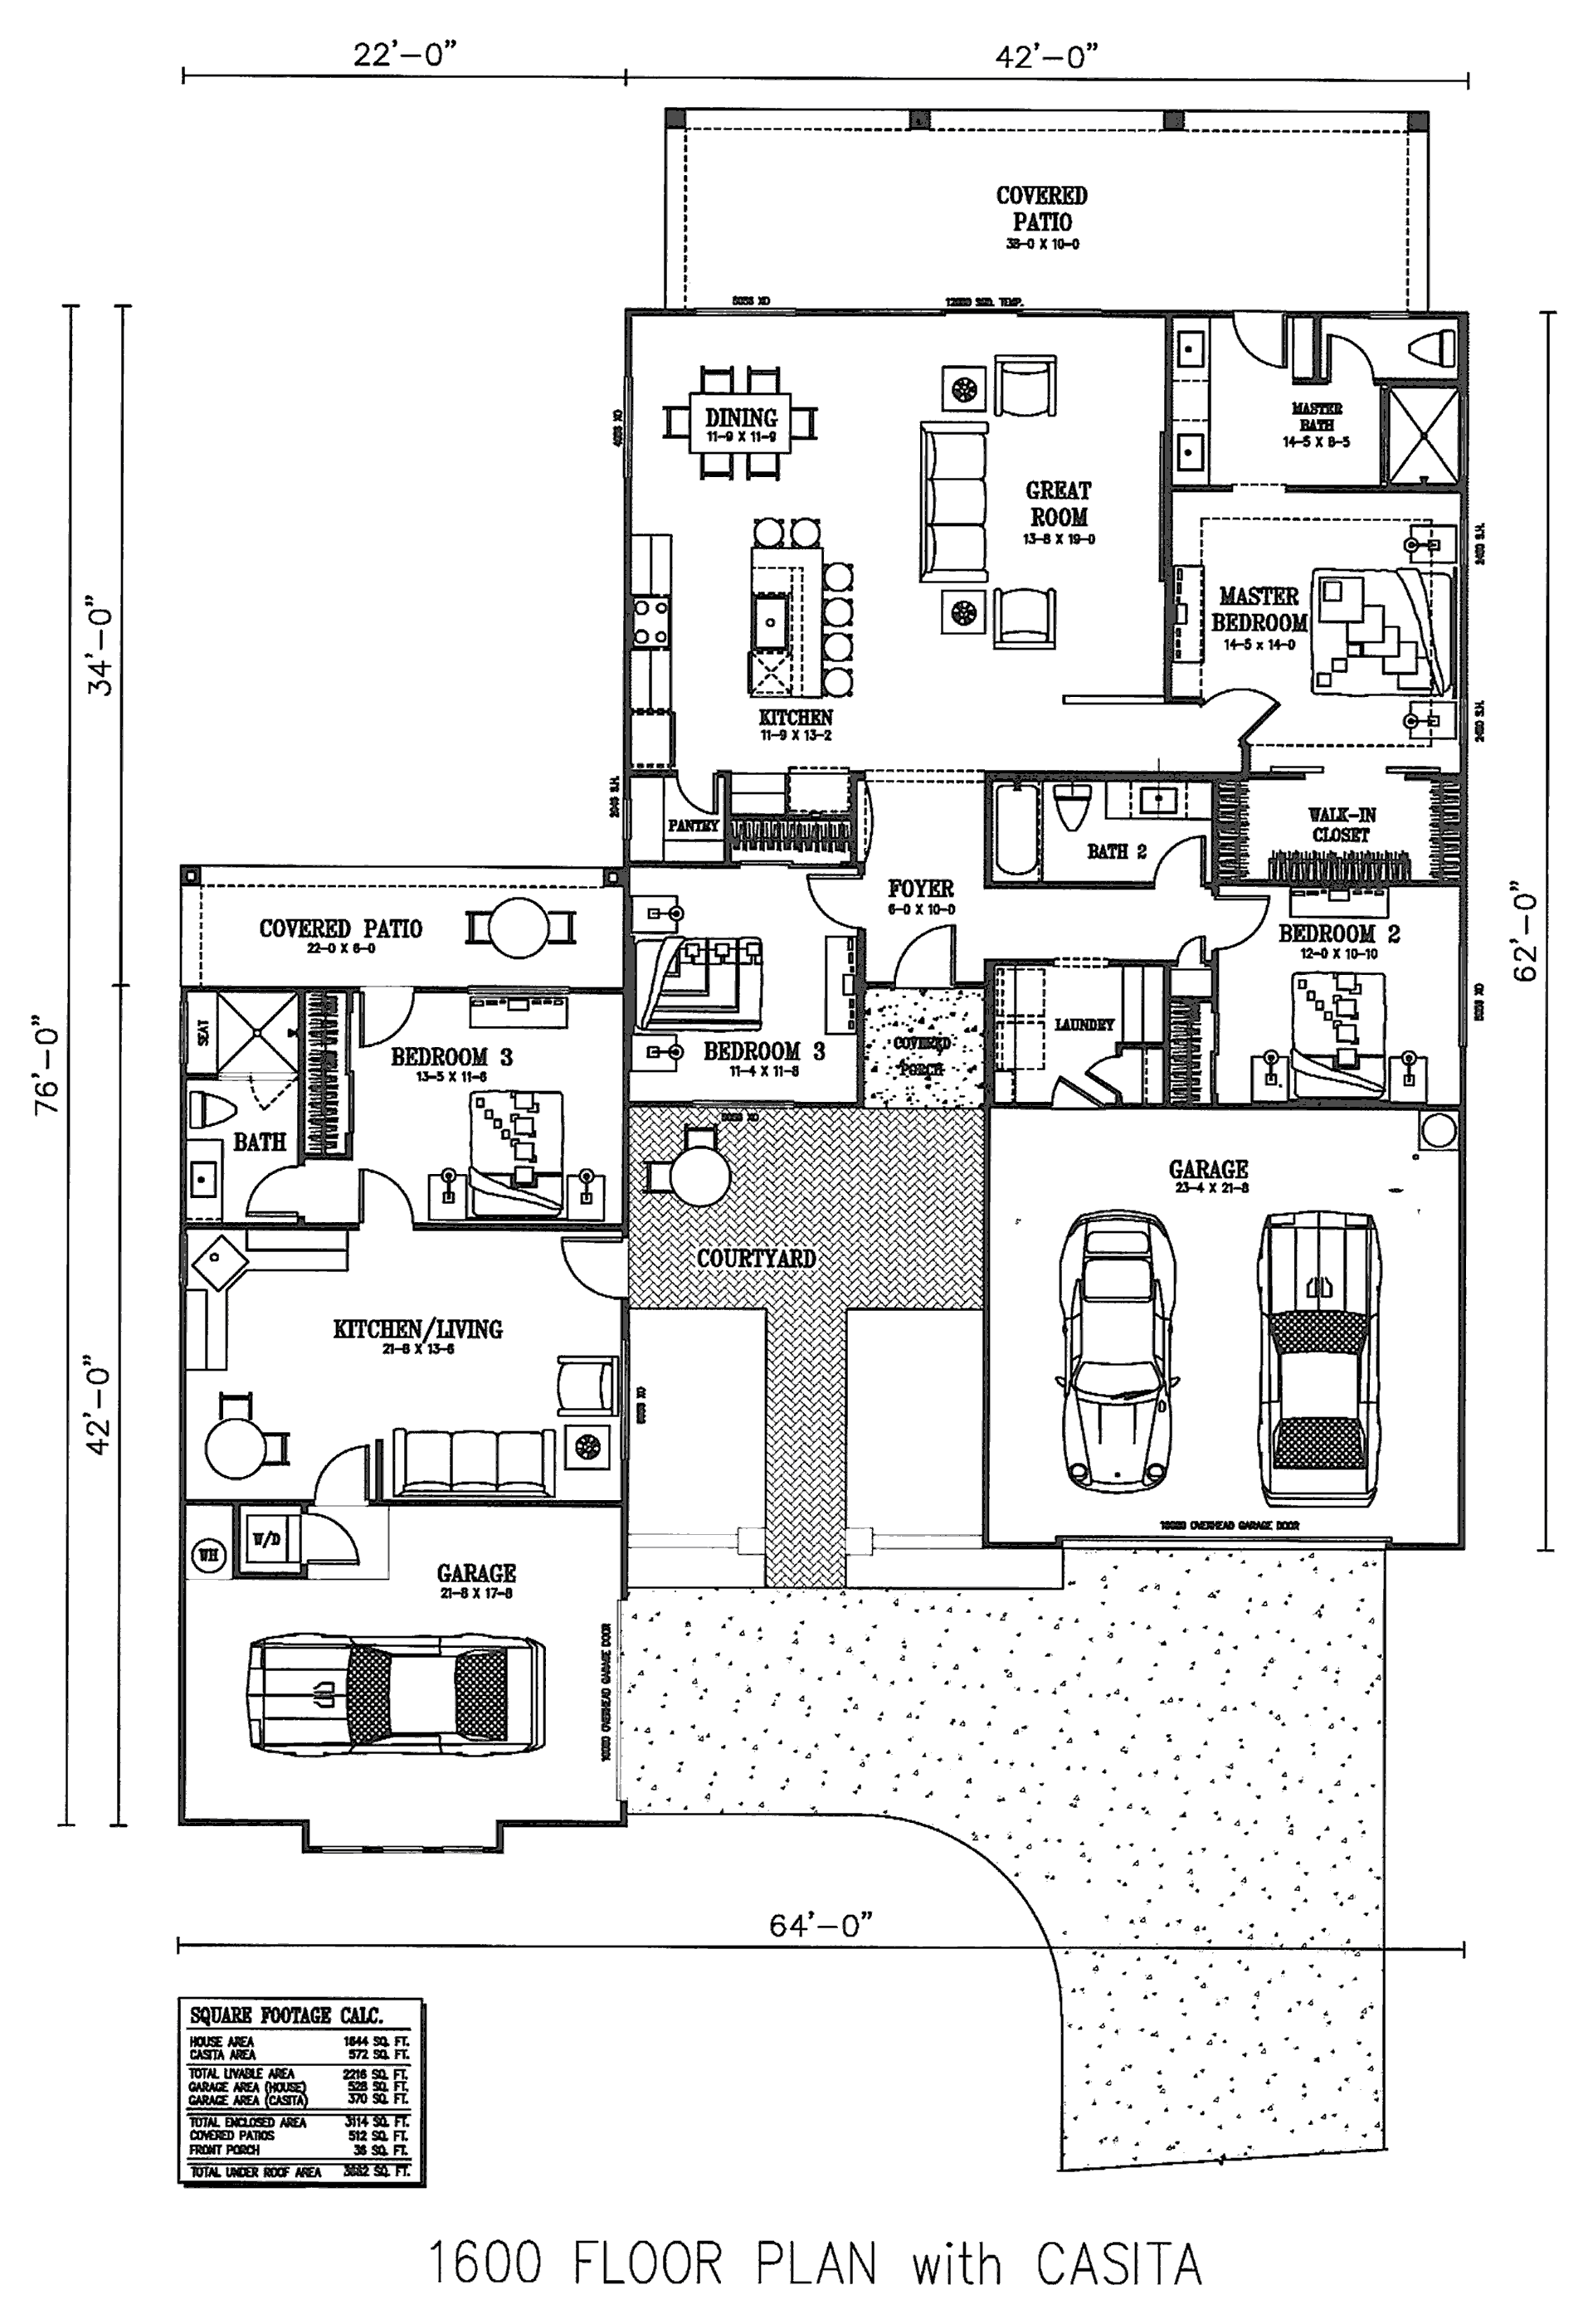 1644 Casita Floor Plan